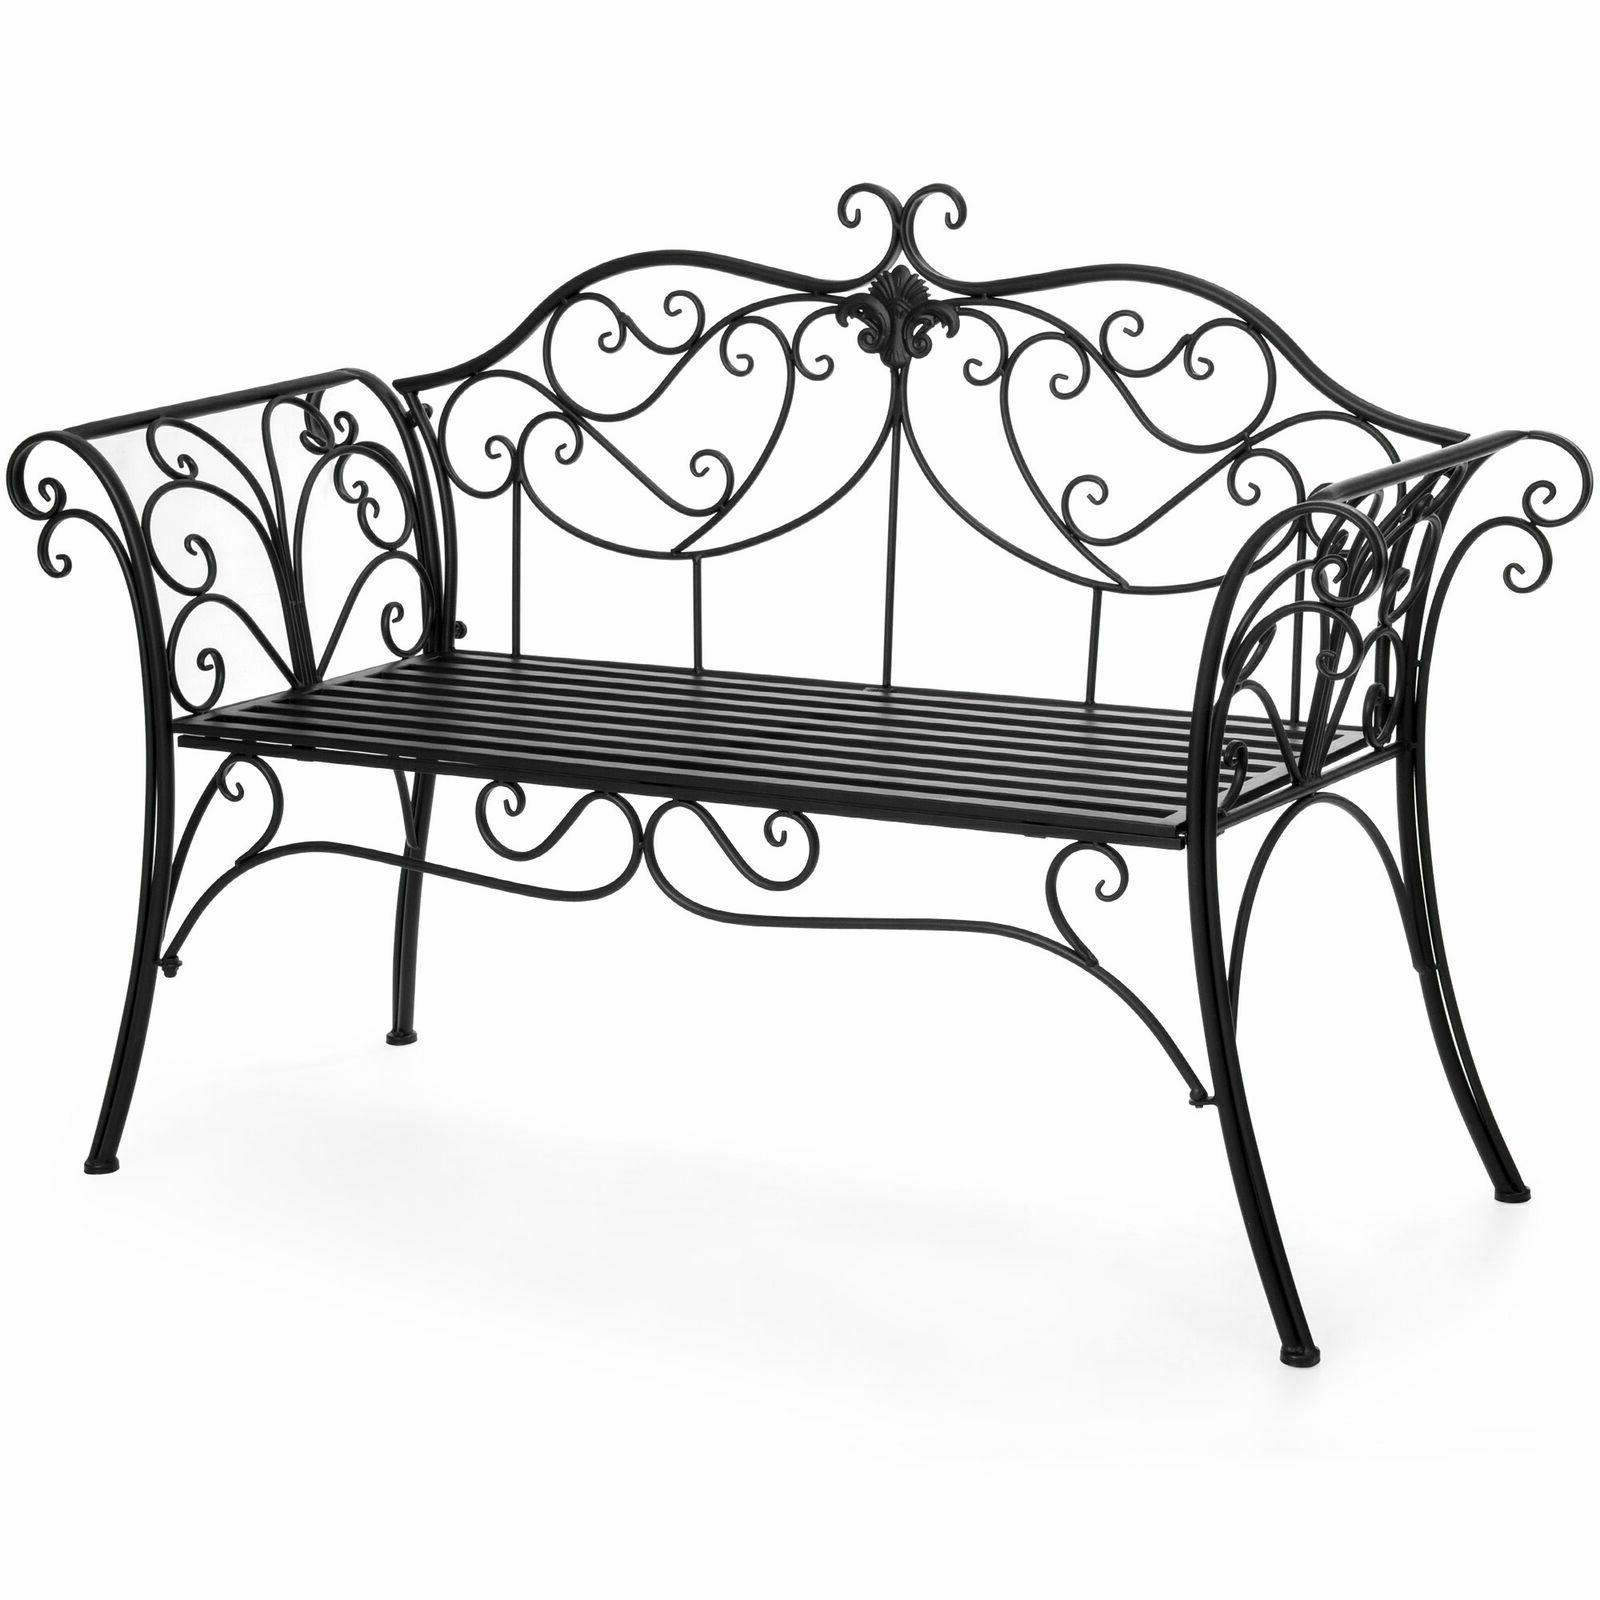 BCP 52in 2-Person Iron Patio Garden Bench w/ Scroll Details,